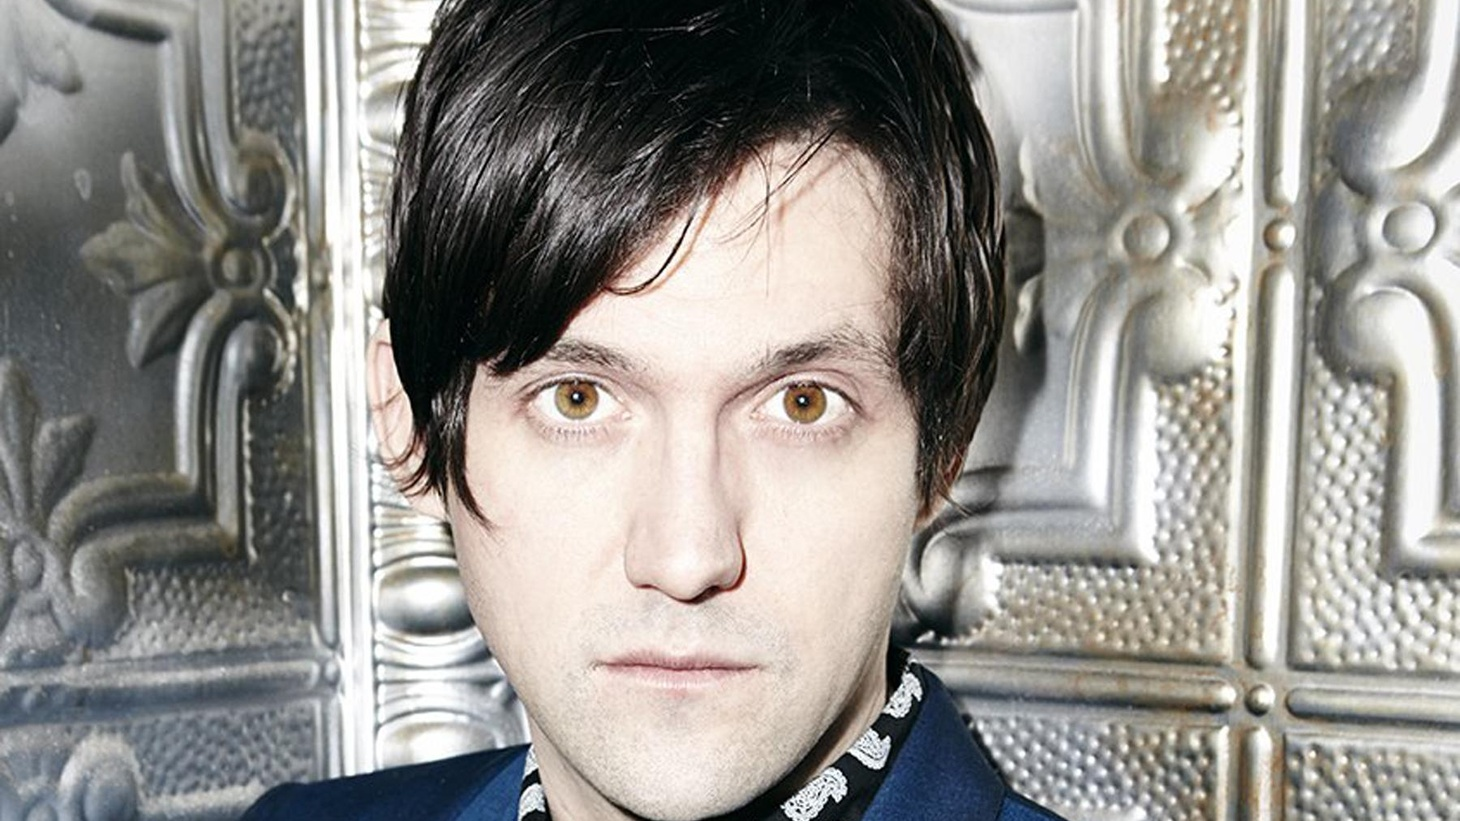 "Prolific songwriter Conor Oberst aka Bright Eyes released a gorgeous new album recently. Today's Top Tune is one of the most spiritually uplifting tracks on the album and has a very catchy melody. It's called ""Hundreds of Ways""."